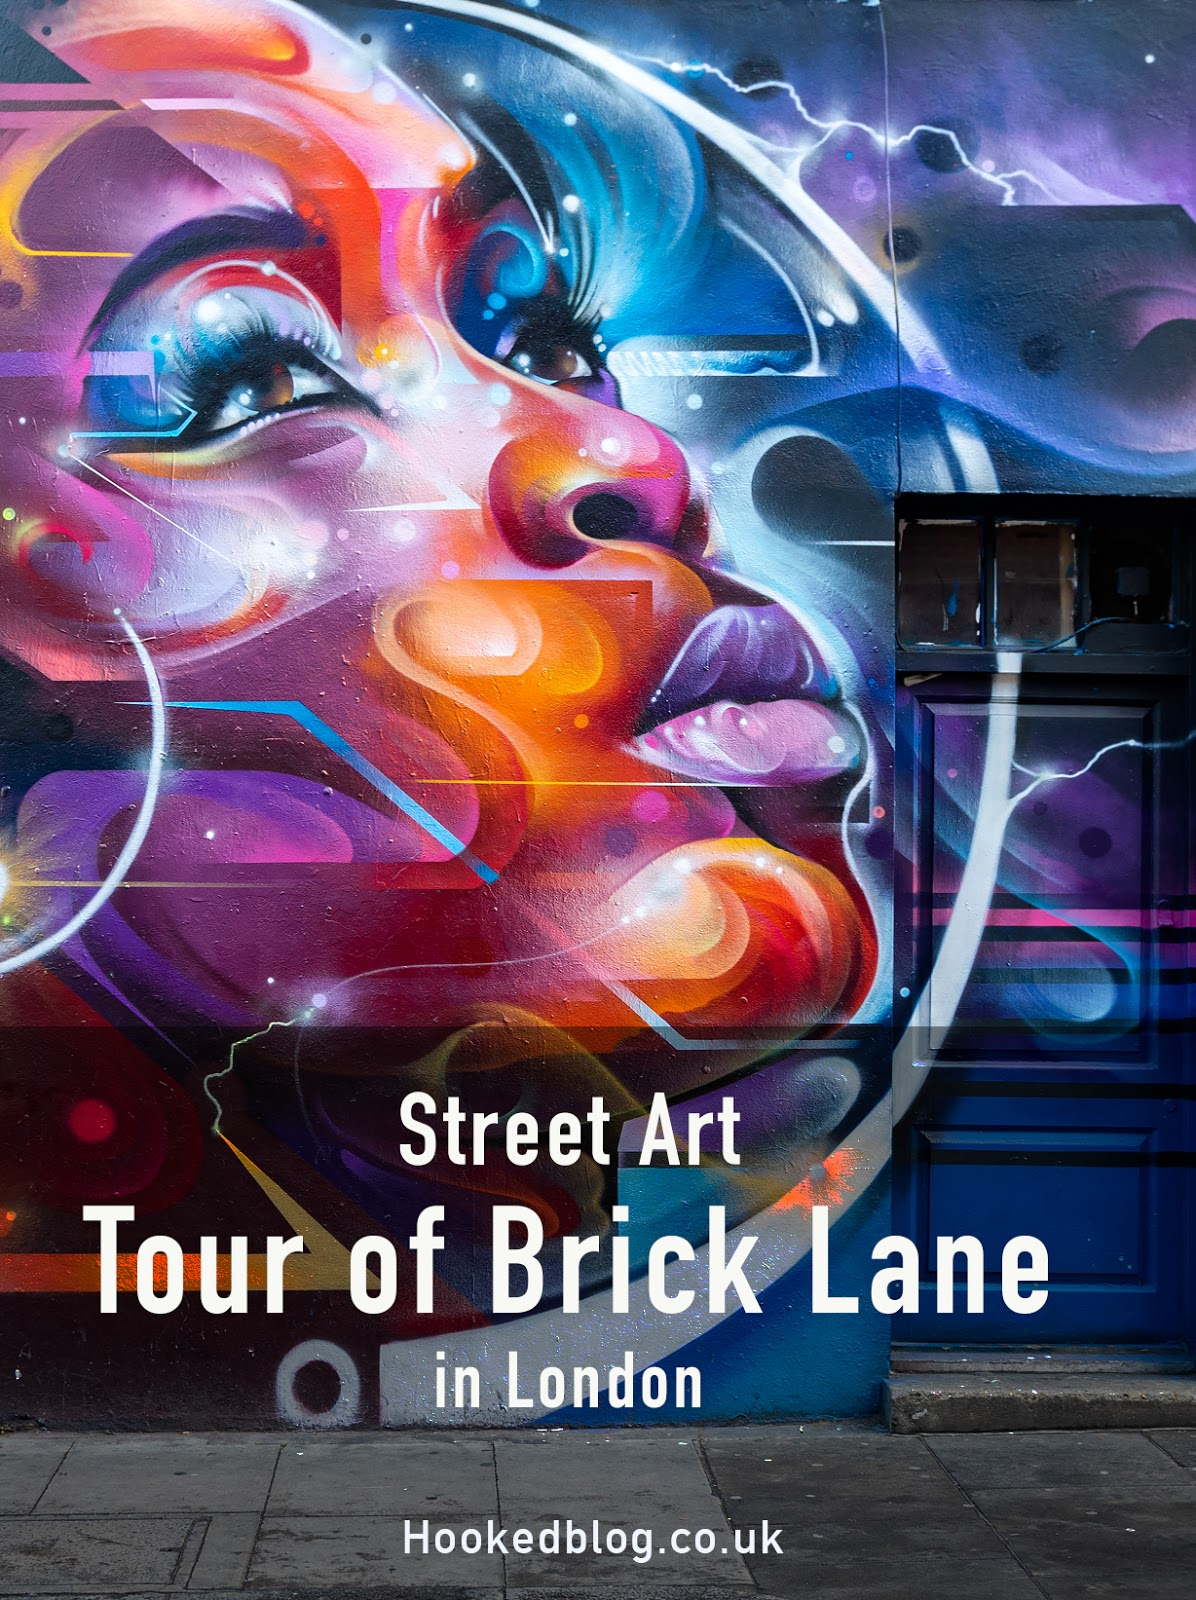 A Street Art Tour of Brick Lane in London, with photographs and a google map to guide you to some of the best street art in Brick Lane. #streetart #murals #Hookedblog